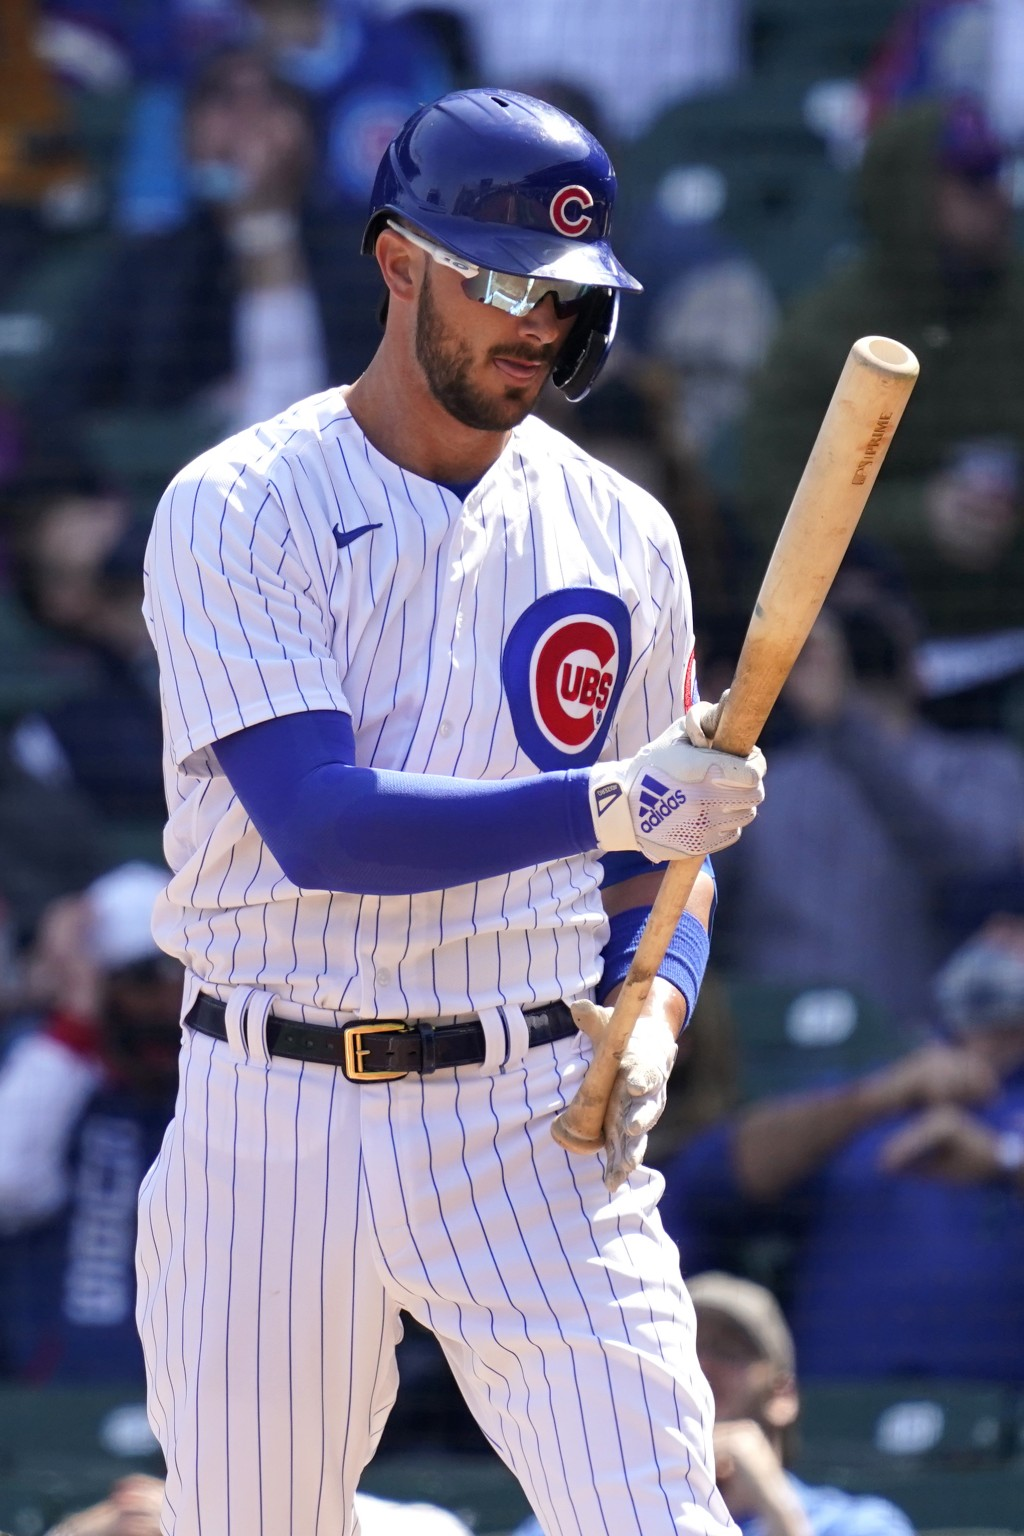 Chicago Cubs' Kris Bryant checks his bat during the first inning of a baseball game against the Pittsburgh Pirates in Chicago, Saturday, April 3, 2021...